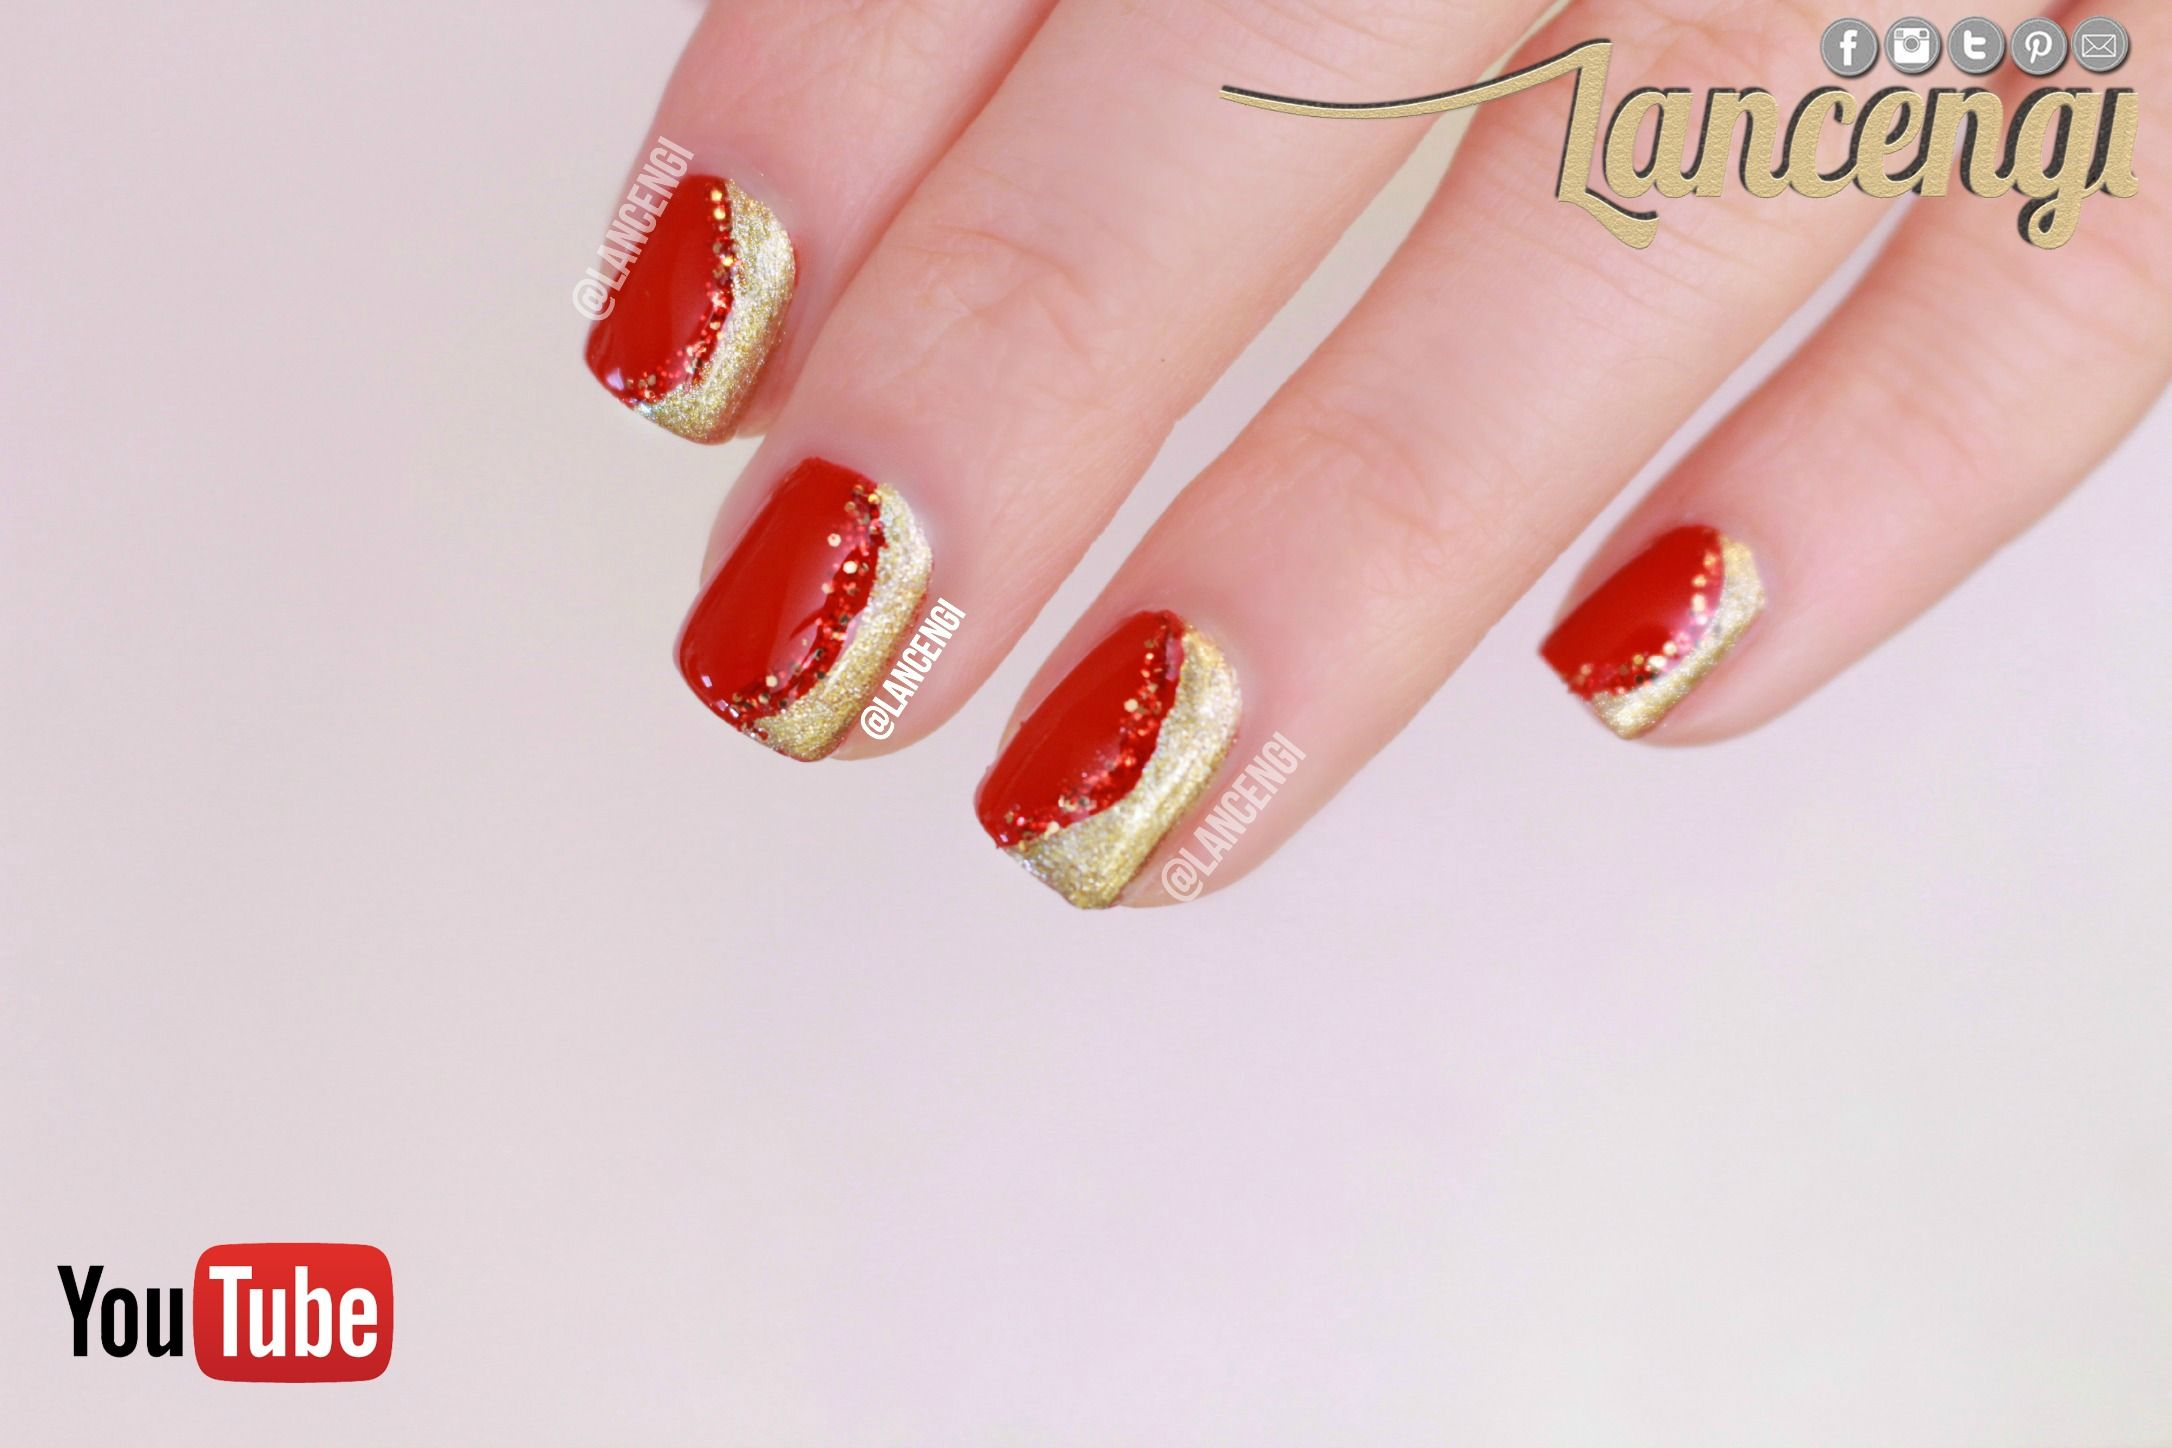 Nail designs for prom do it yourself the best design 2017 nail art styles gallery and design ideas solutioingenieria Gallery